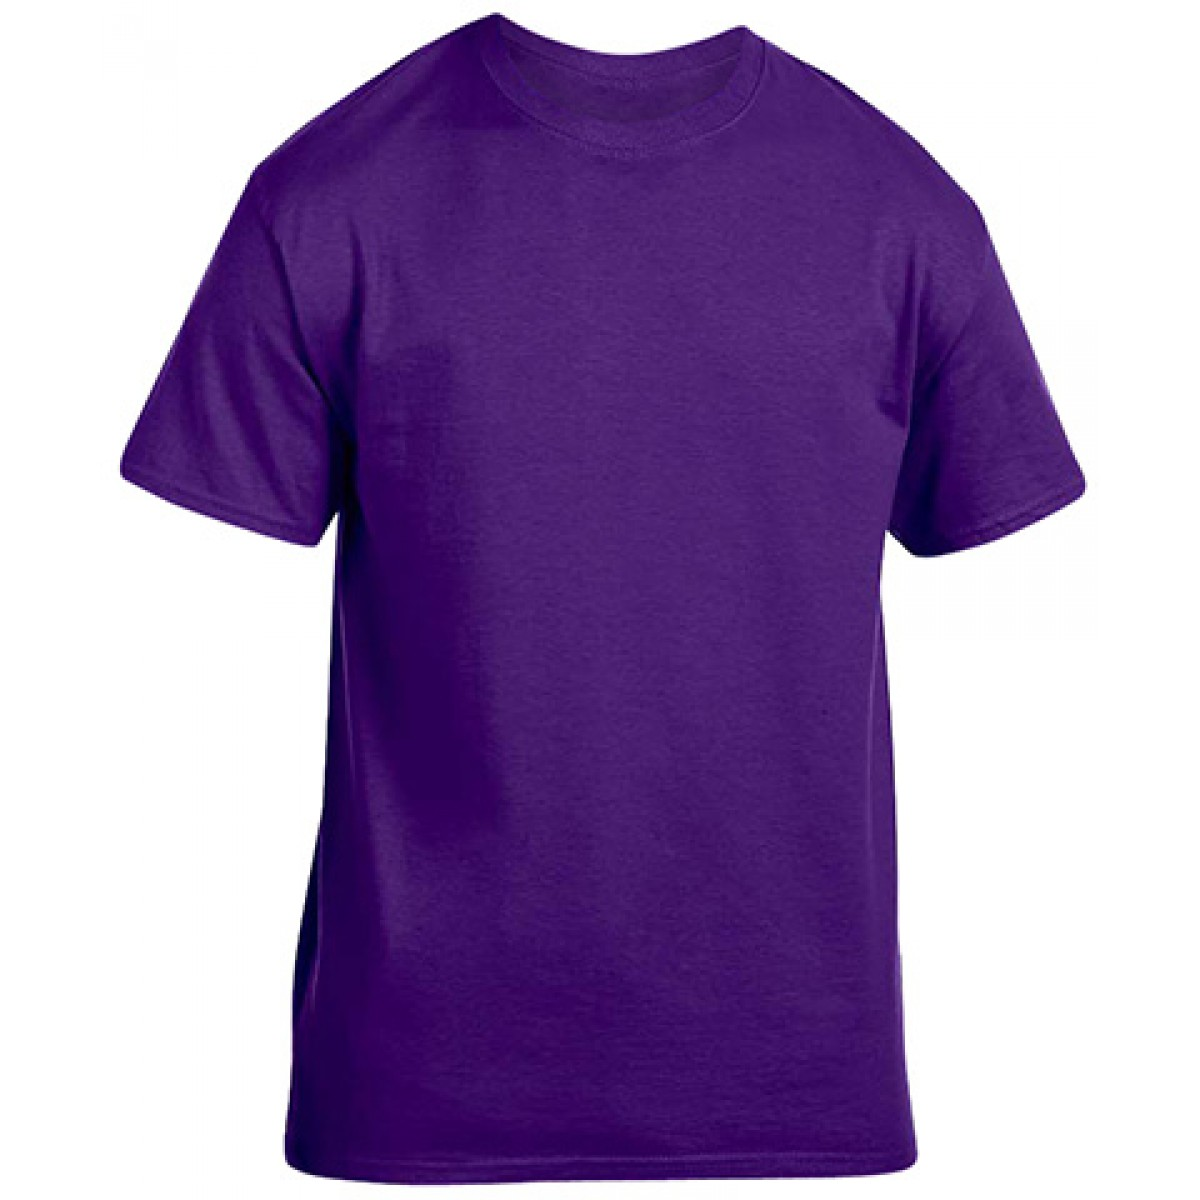 Soft 100% Cotton T-Shirt-Purple-XL